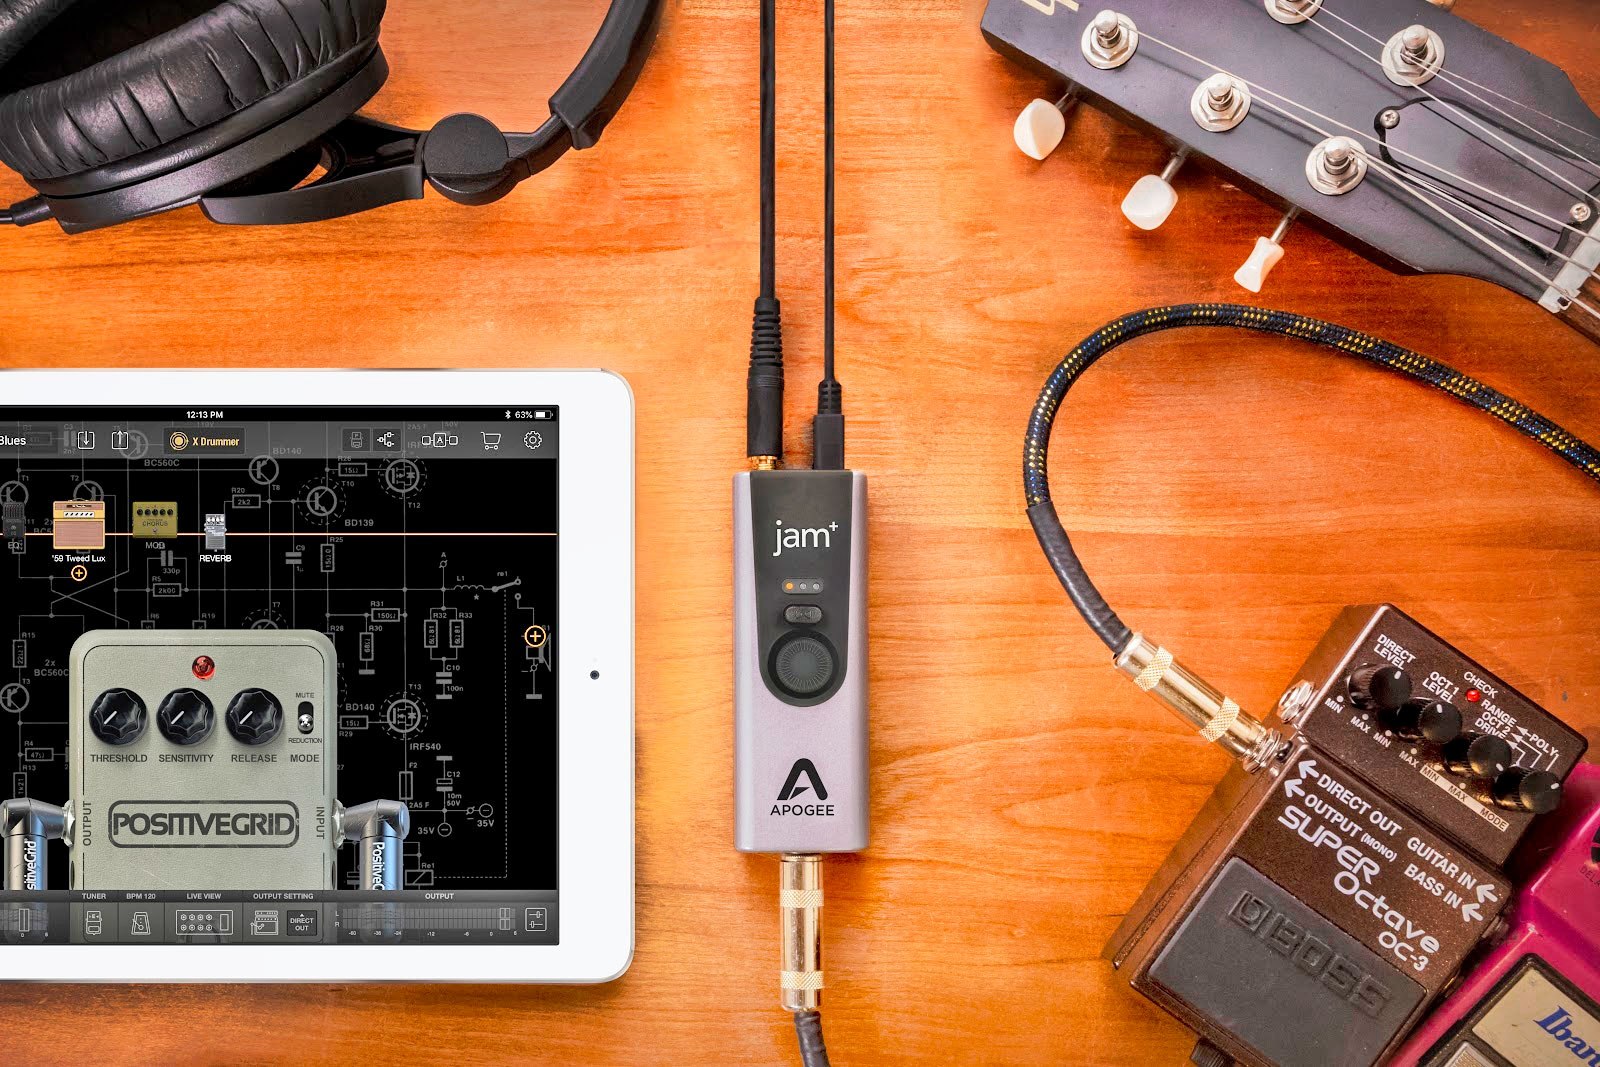 Apogee\'s Jam+ is an upgraded guitar input for iOS, Mac and Windows